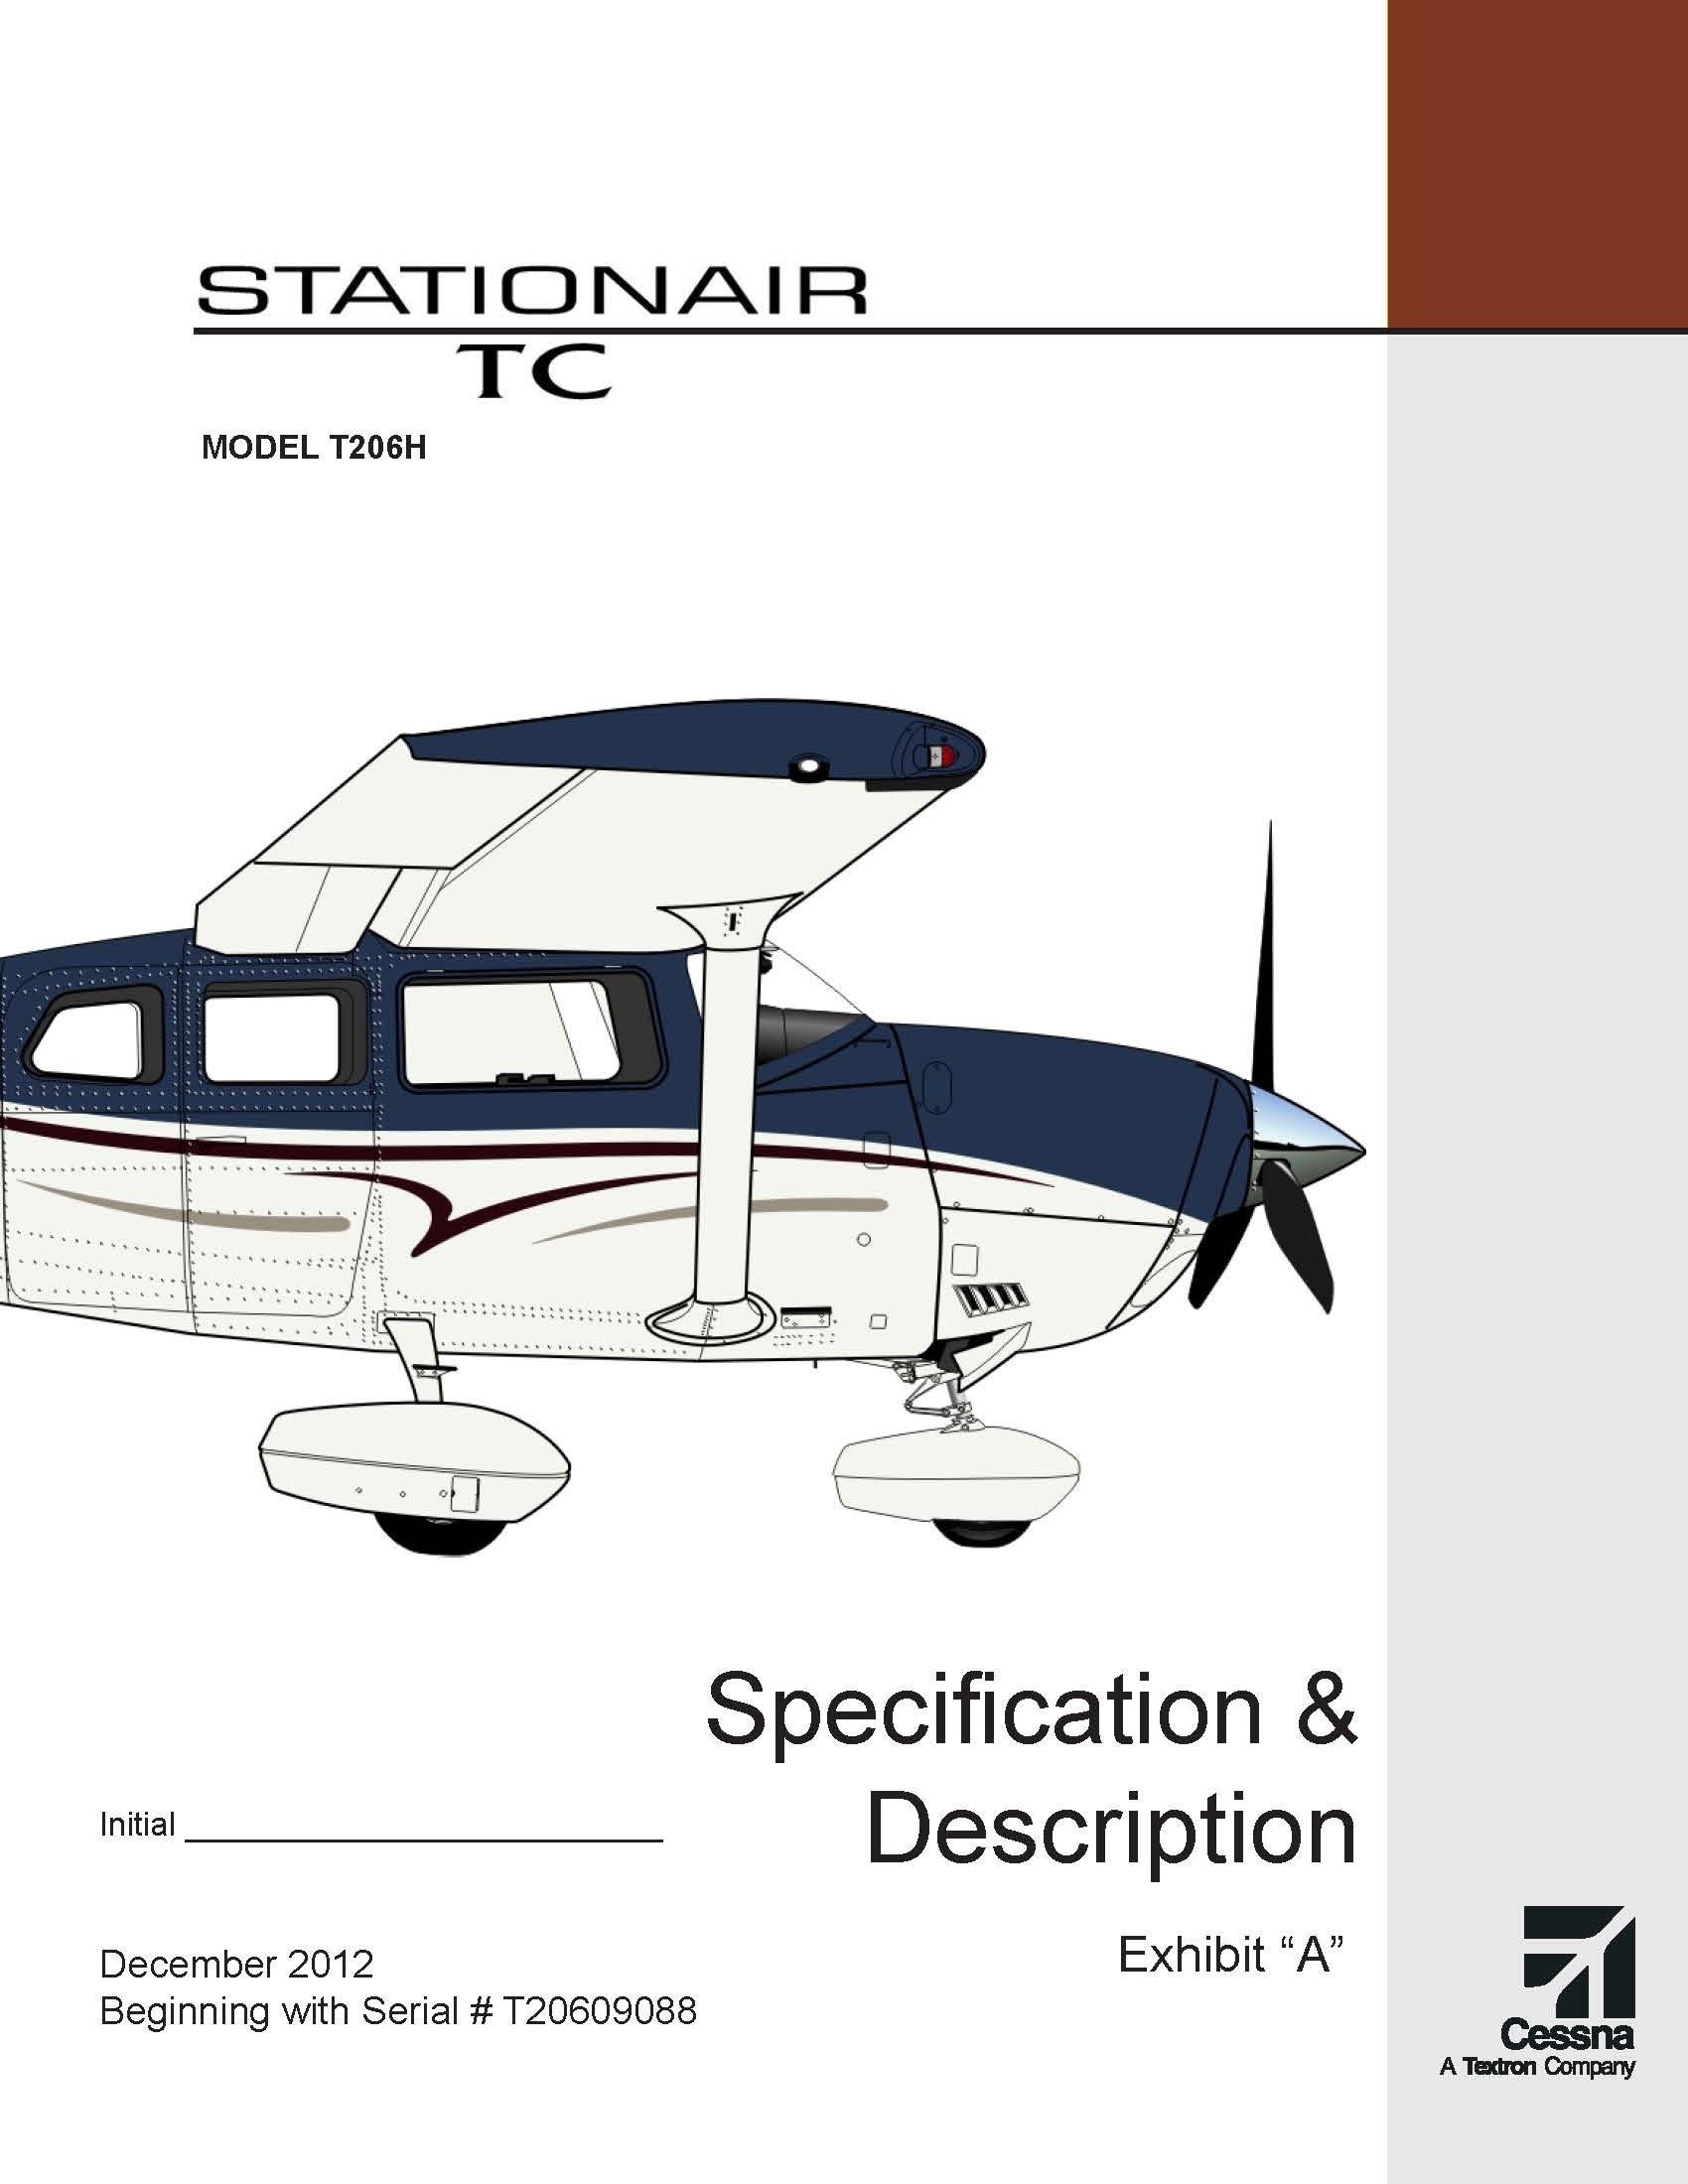 Cessna Turbo Stationair specs and description